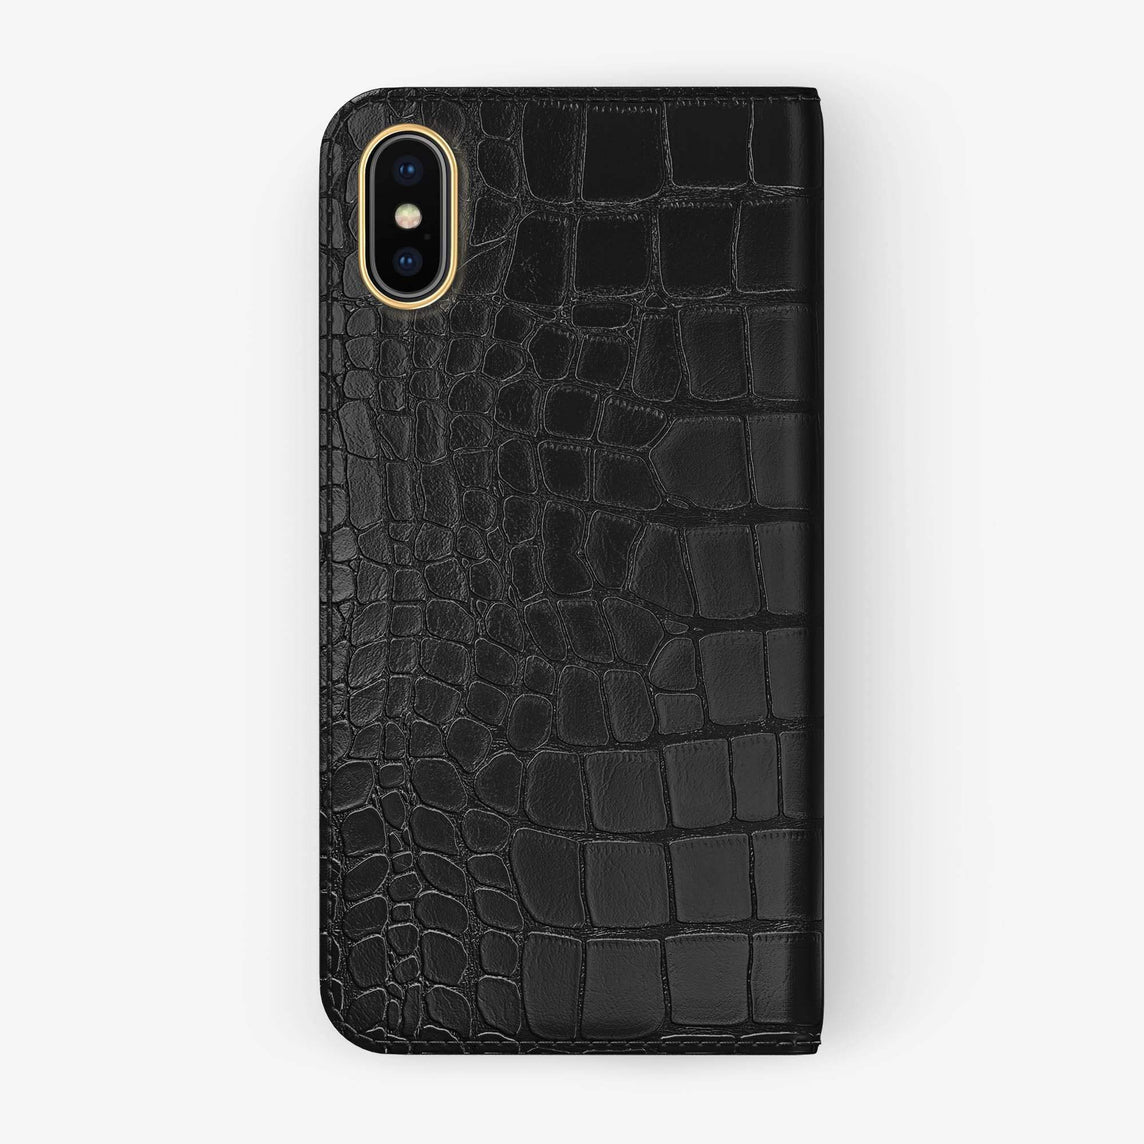 Black Alligator iPhone Folio Case for iPhone XS Max finishing yellow gold - Hadoro Luxury Cases